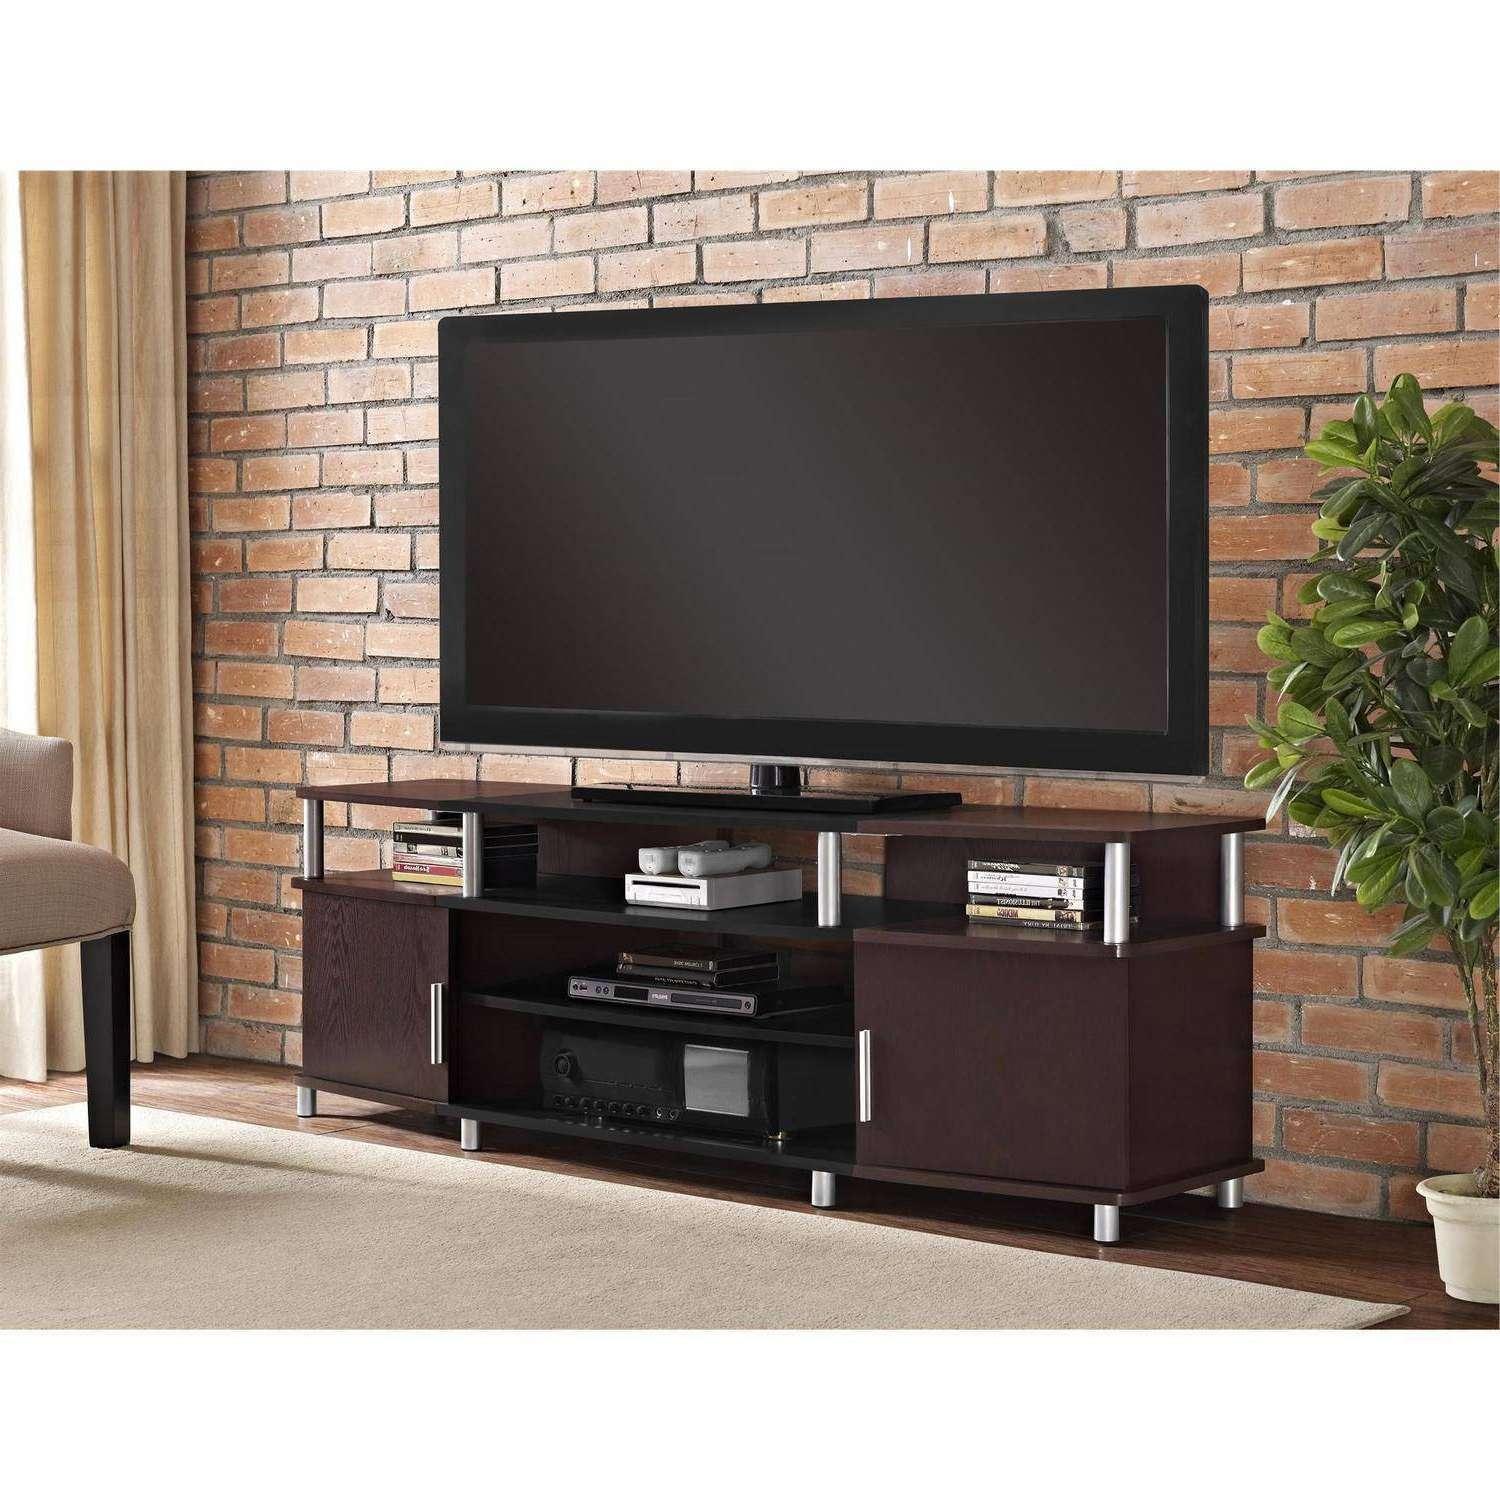 Tv Stands & Entertainment Centers – Walmart Within Wooden Tv Stands For Flat Screens (View 12 of 15)